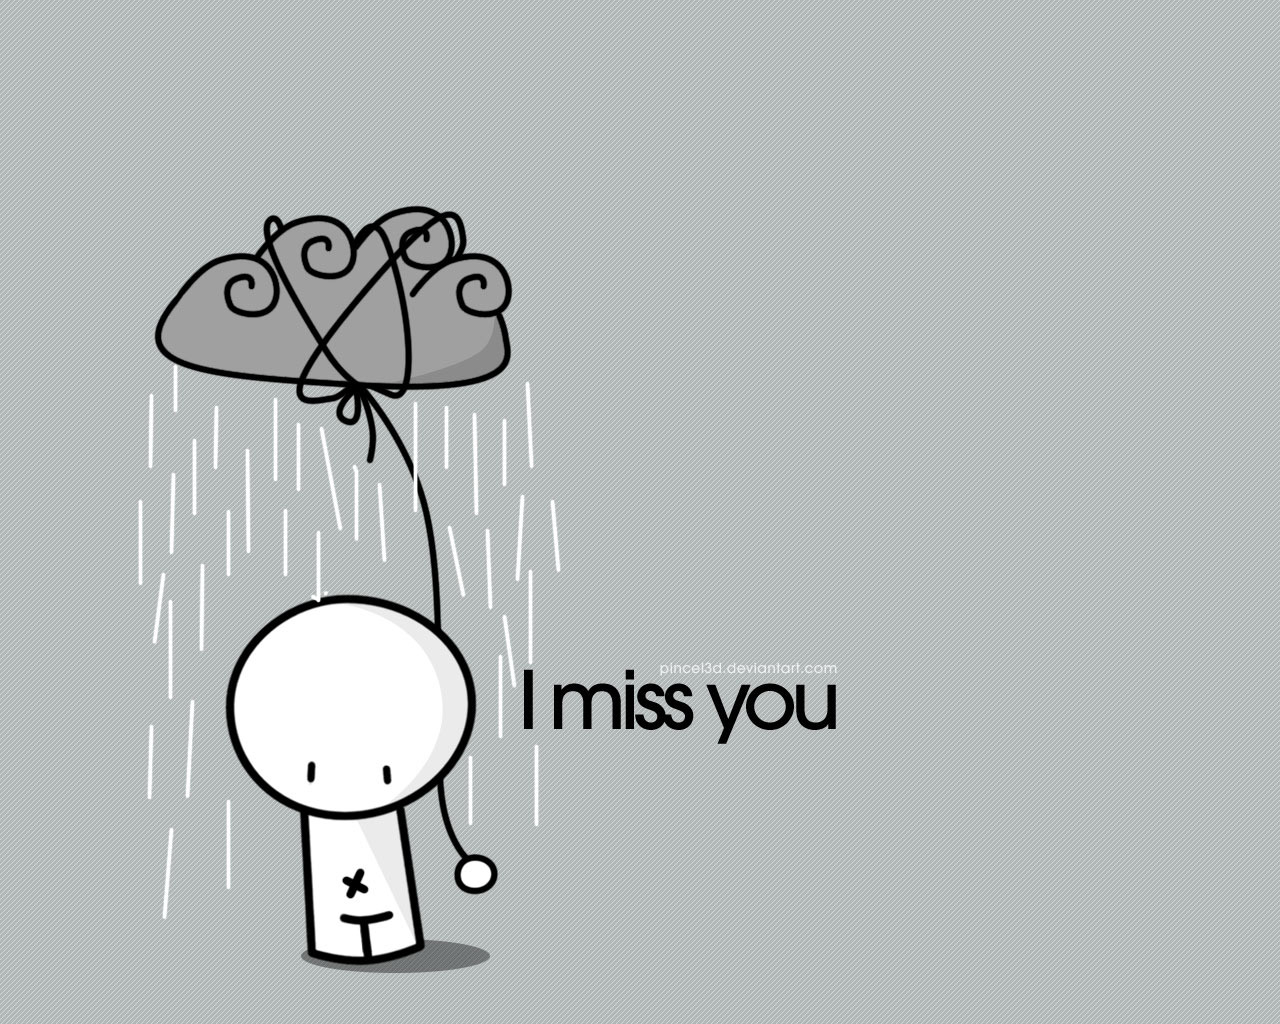 Miss You Wallpaper For Desktop Desktop wallpa 1280x1024